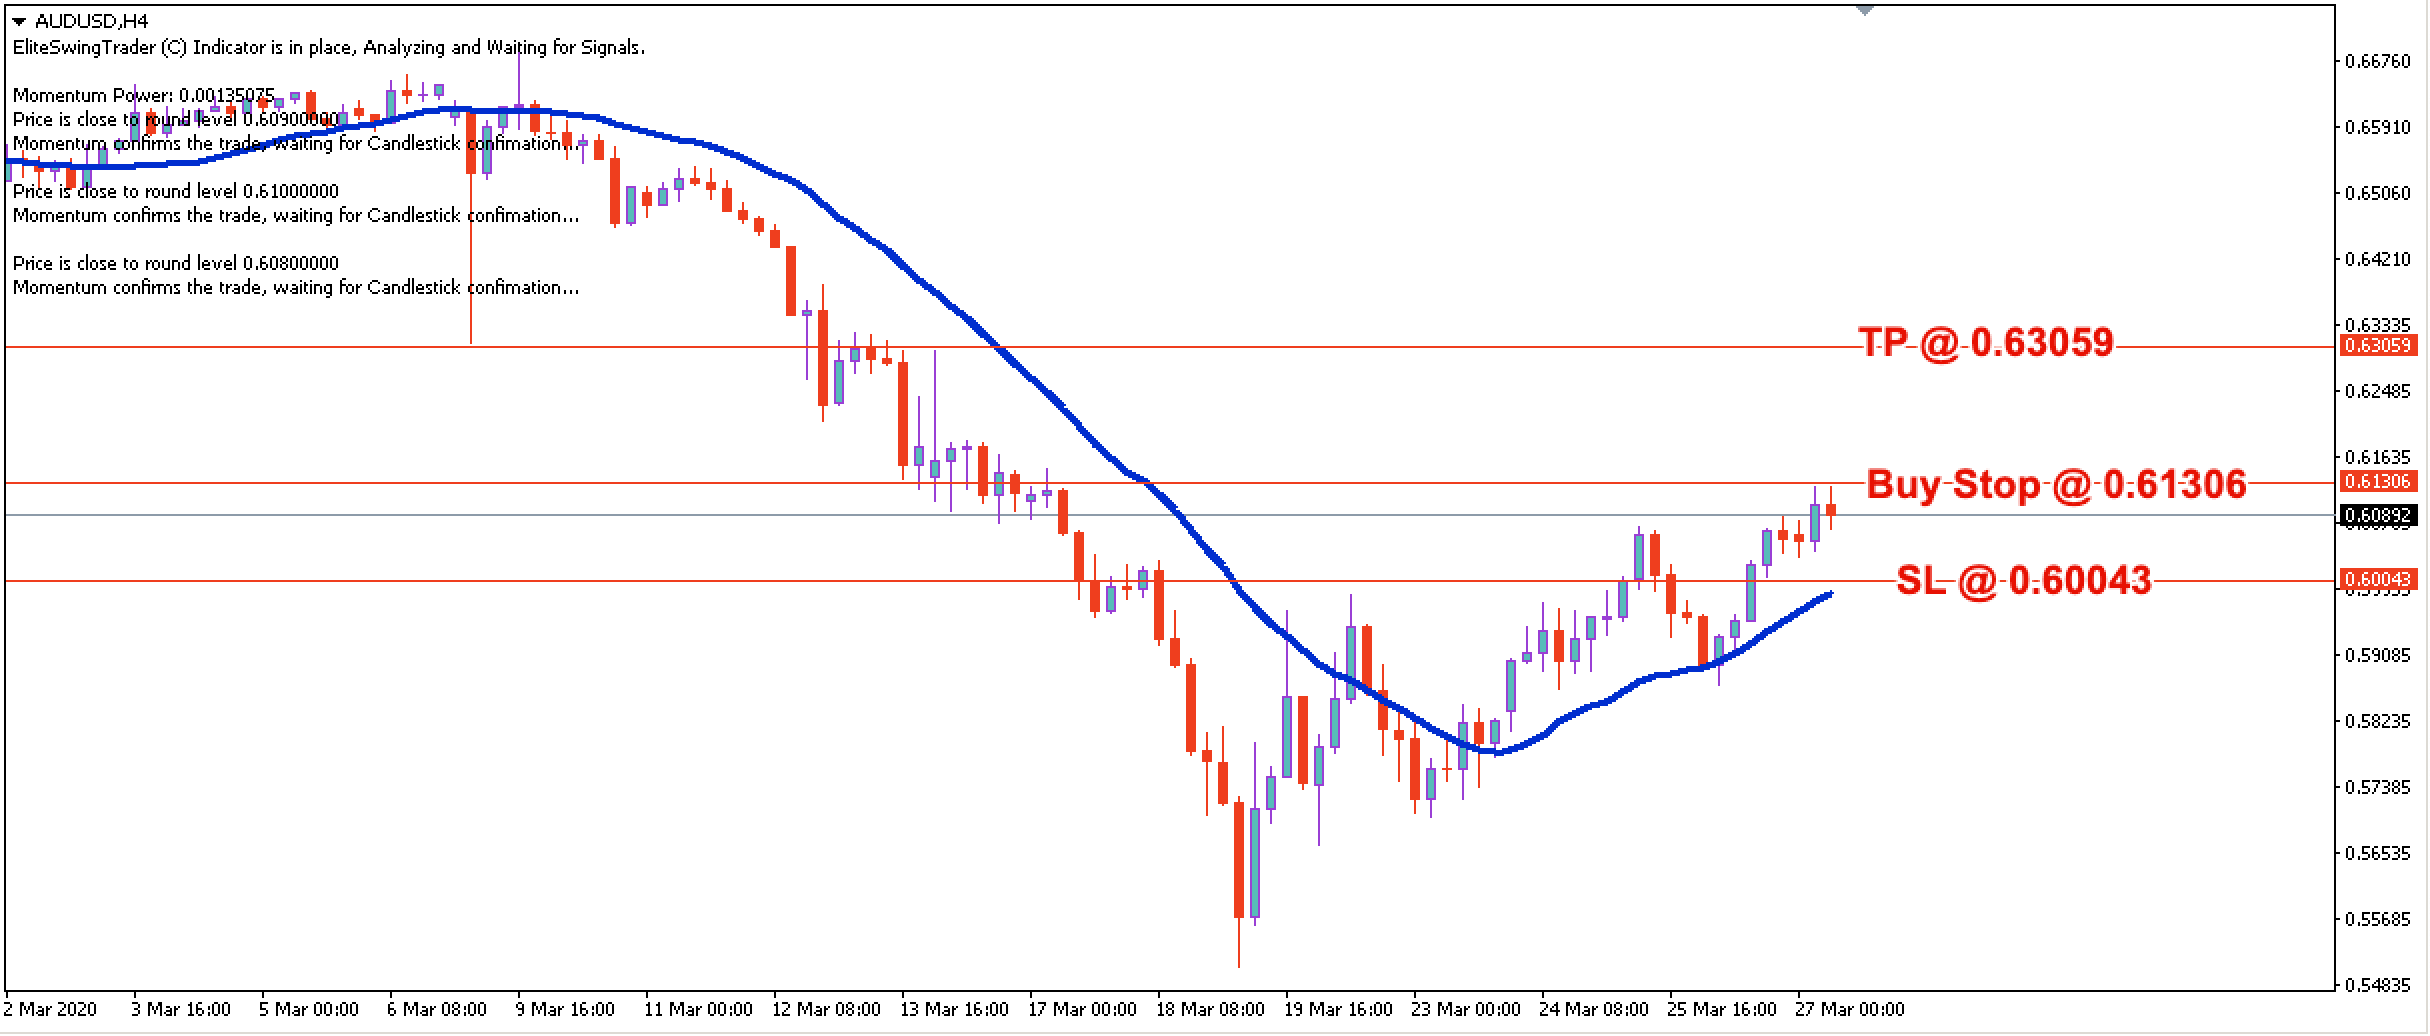 AUD/USD Daily Price Forecast – 27th March 2020